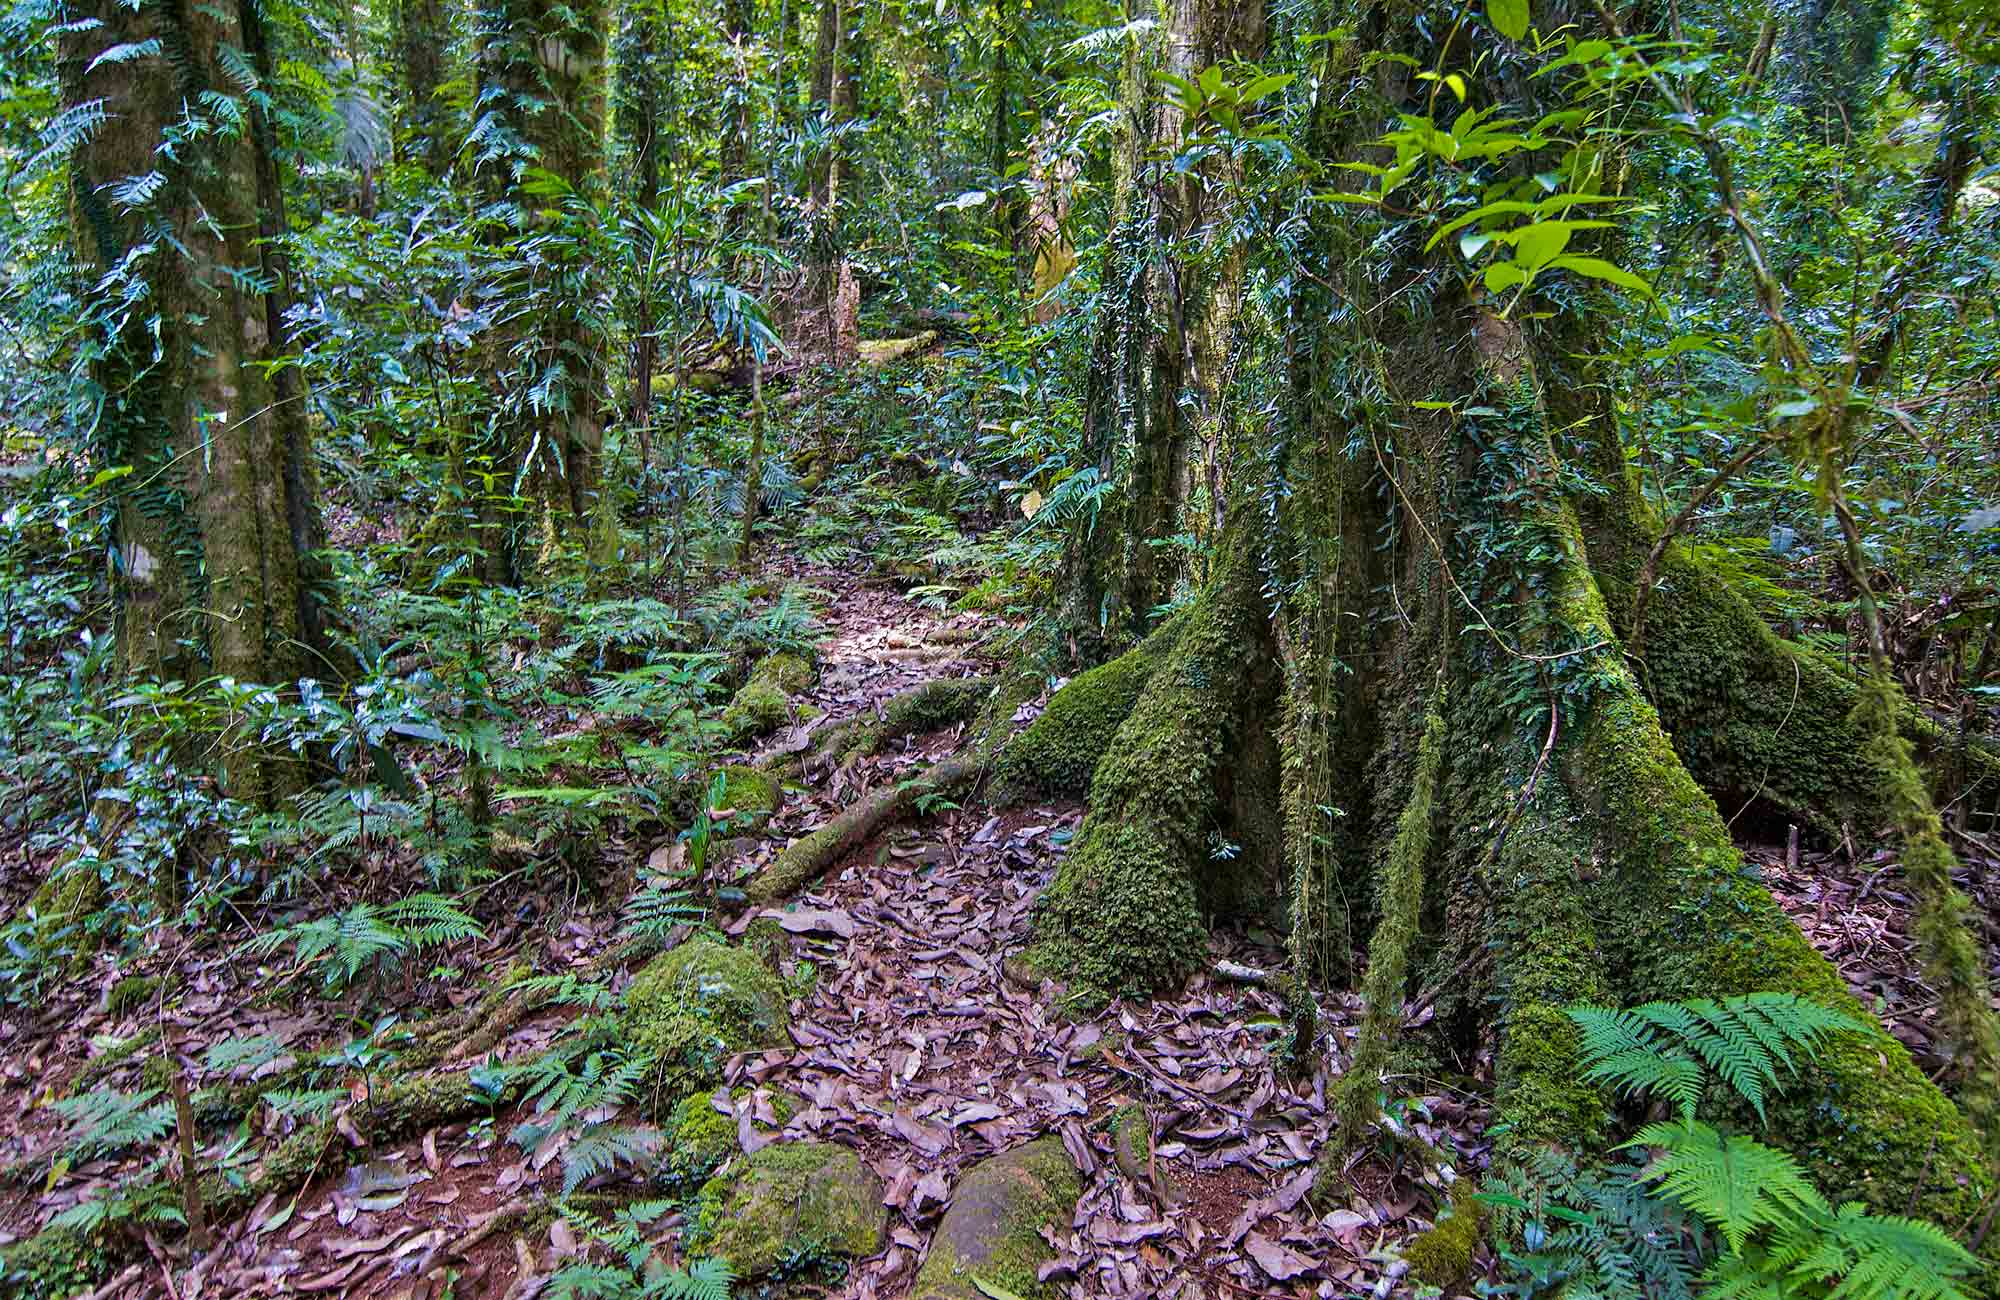 Rainforest along Helmholtzia loop walking track, Border Ranges National Park. Photo credit: John Spencer © DPIE